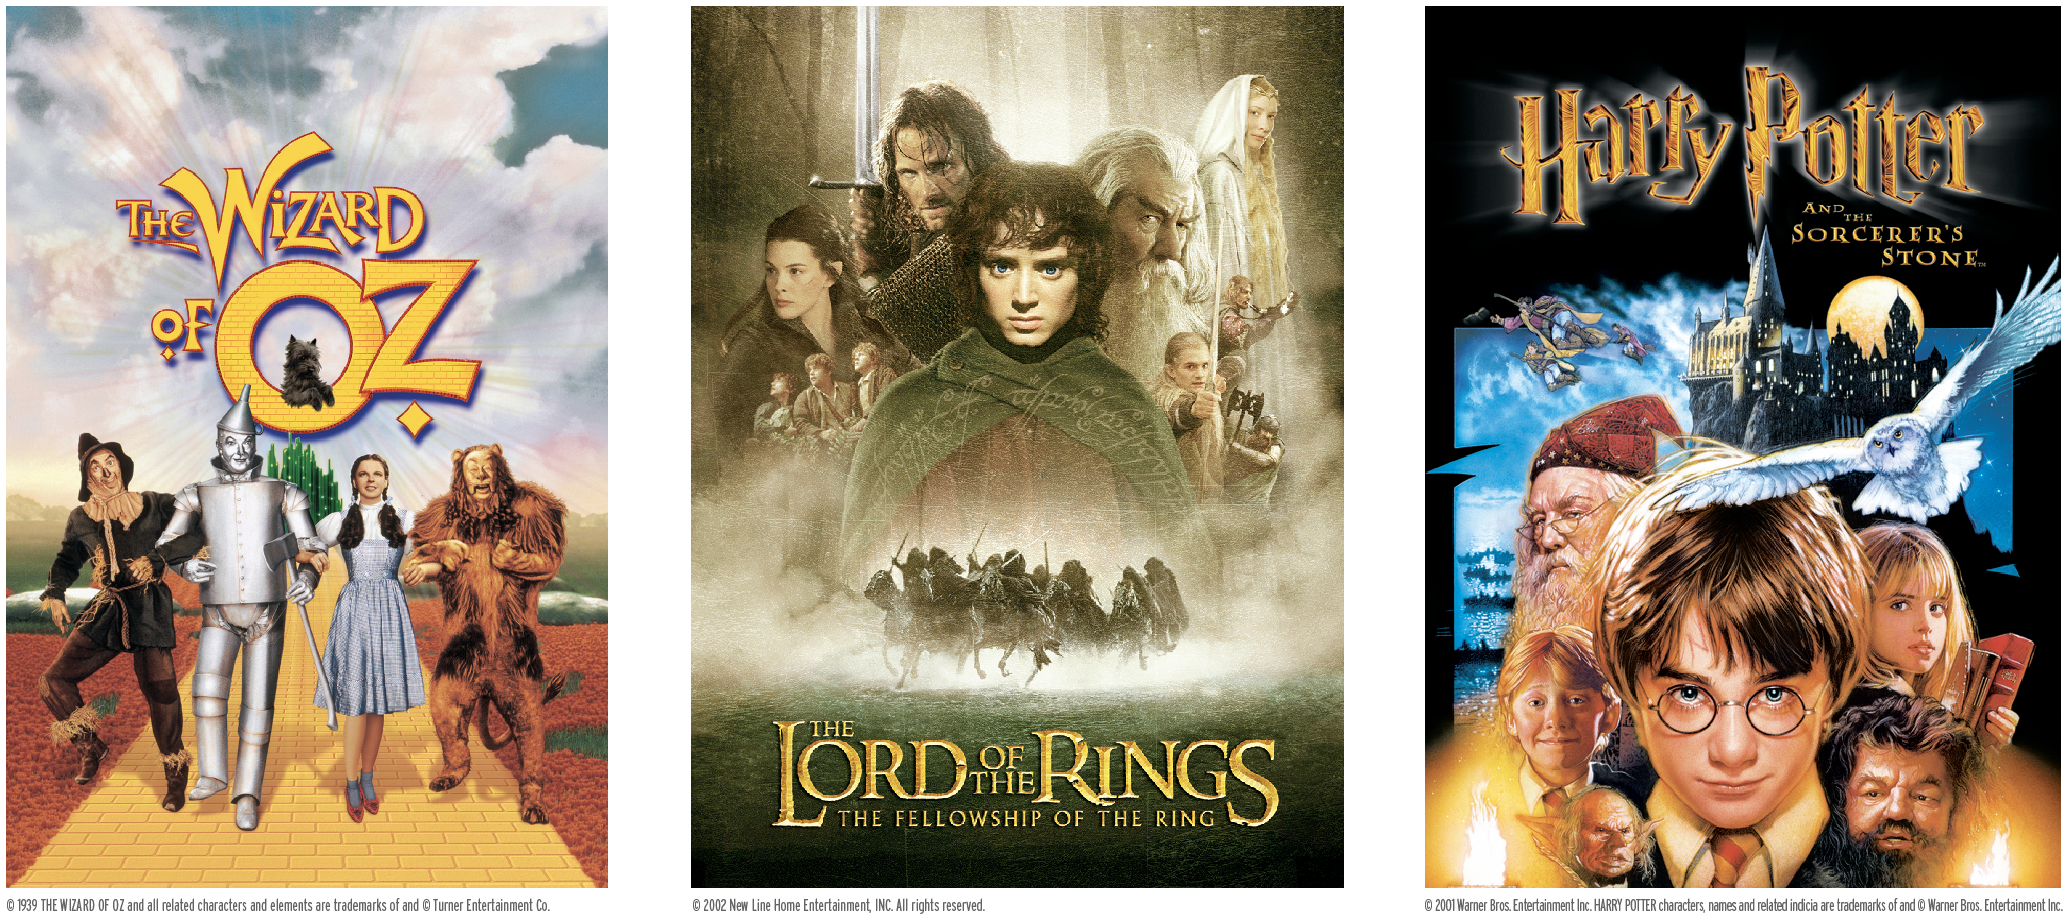 Movie posters for The Wizard of Oz, The Lord of the Rings The Fellowship of the Ring, and Harry Potter and the Sorcerer's Stone